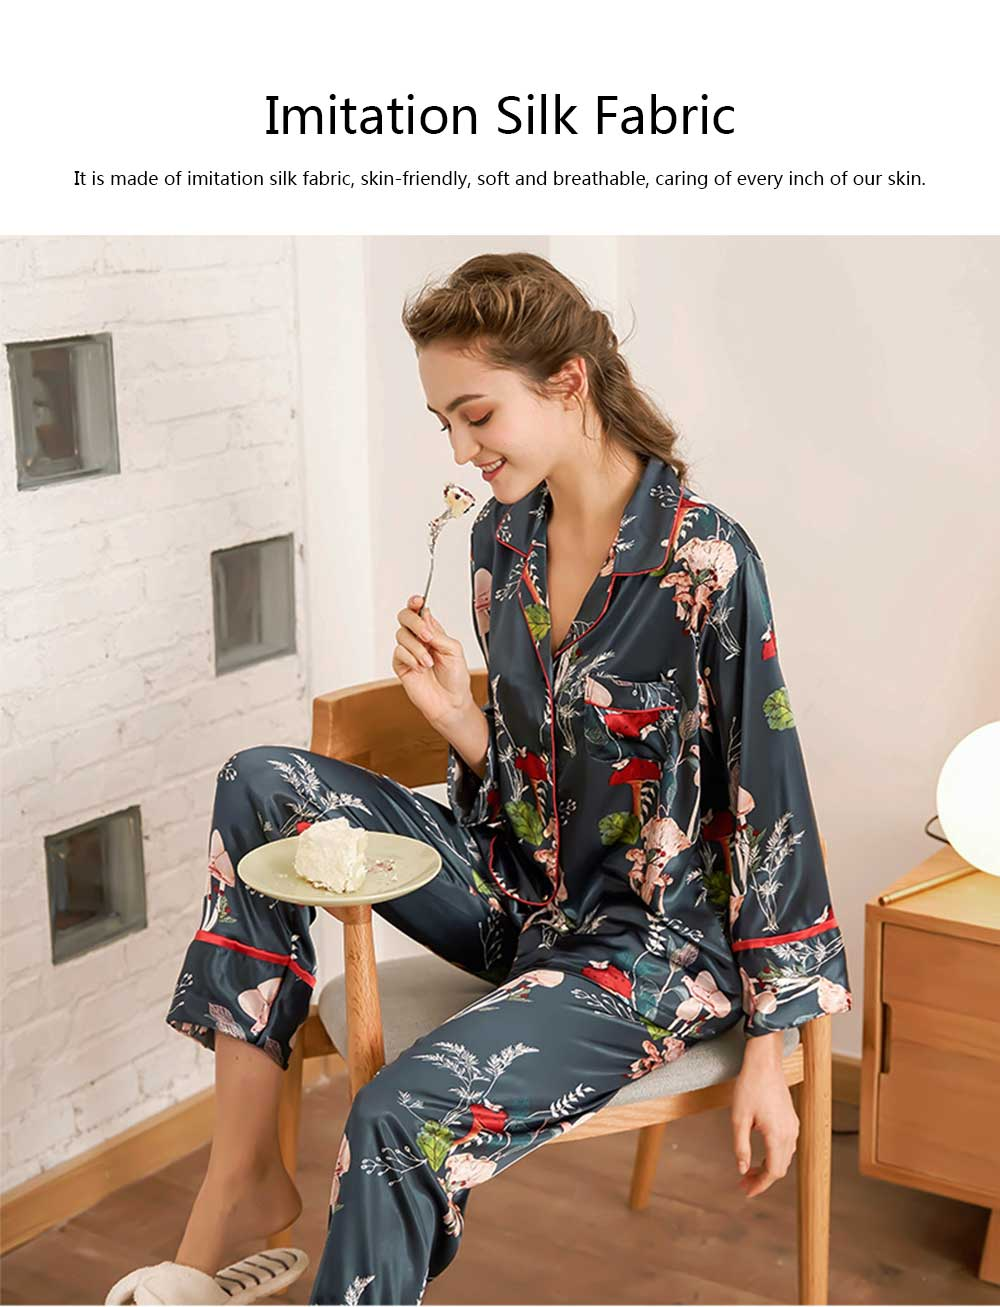 Imitation Silk Fabric Long-sleeved Tracksuit, Botanical Floral Pattern Printed Pajamas, Two-piece Suit 1